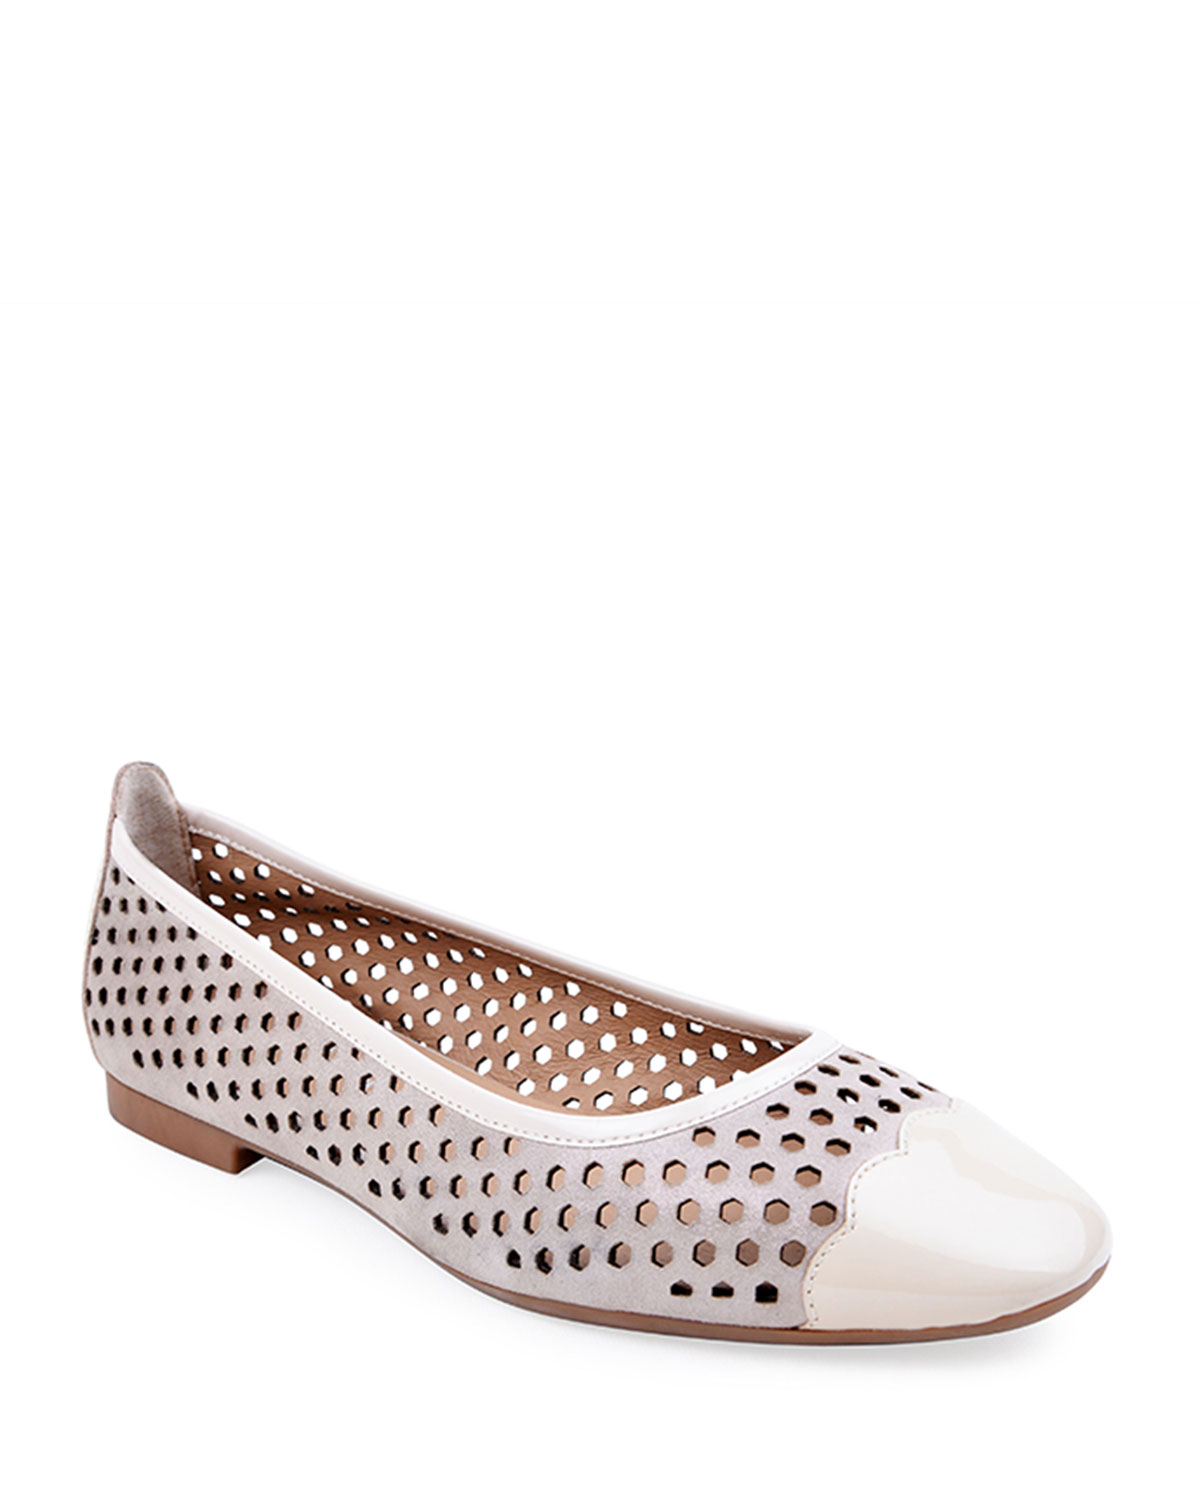 Janae Perforated Suede & Patent Leather Flats